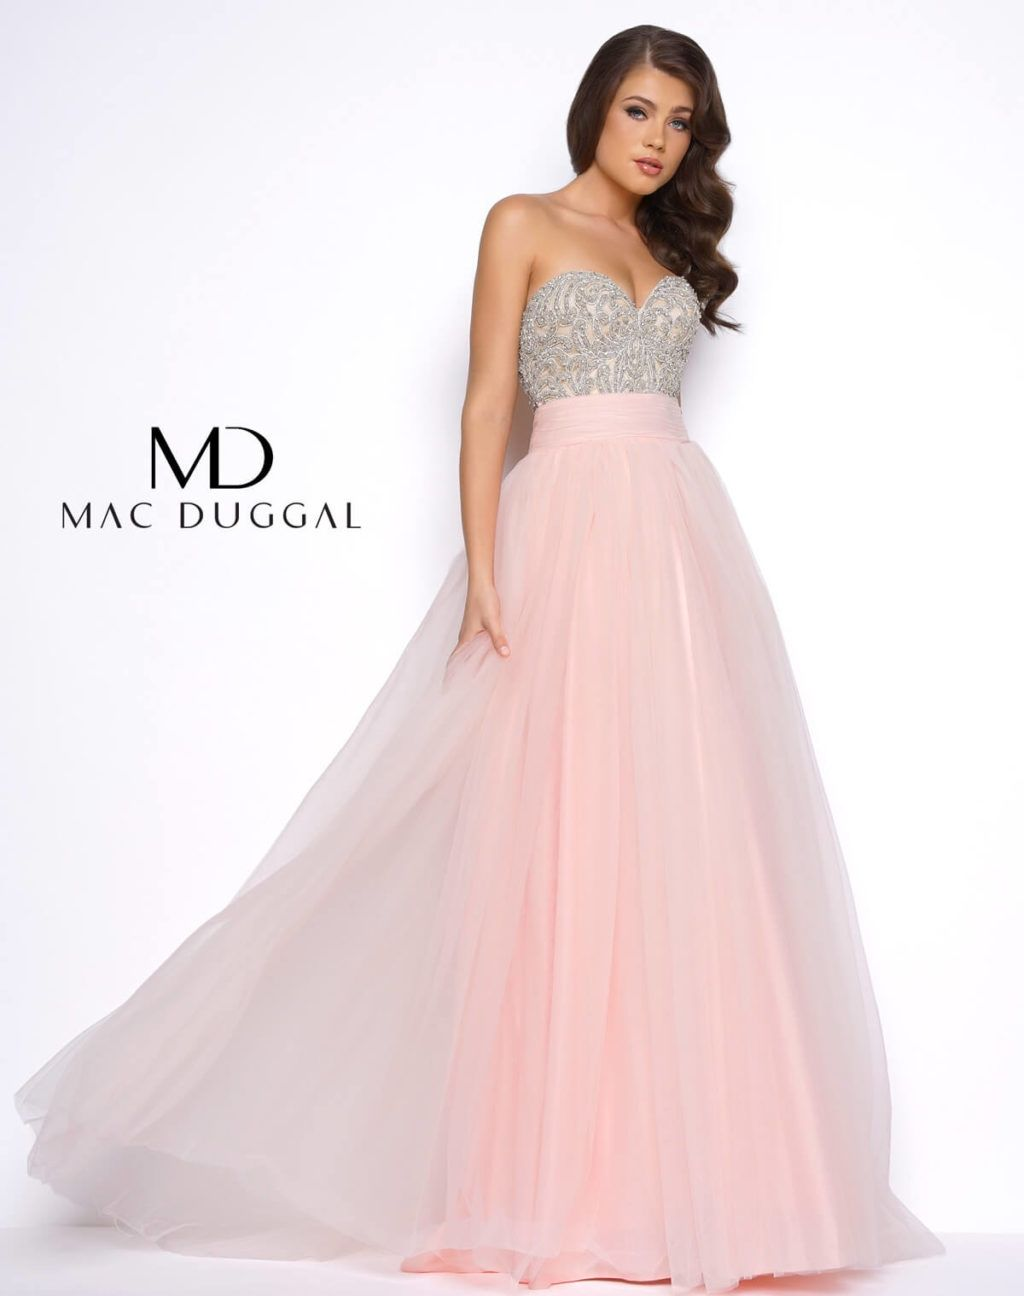 Pink Prom Dress | Mac Duggal 20059M | Prom dresses | Pinterest